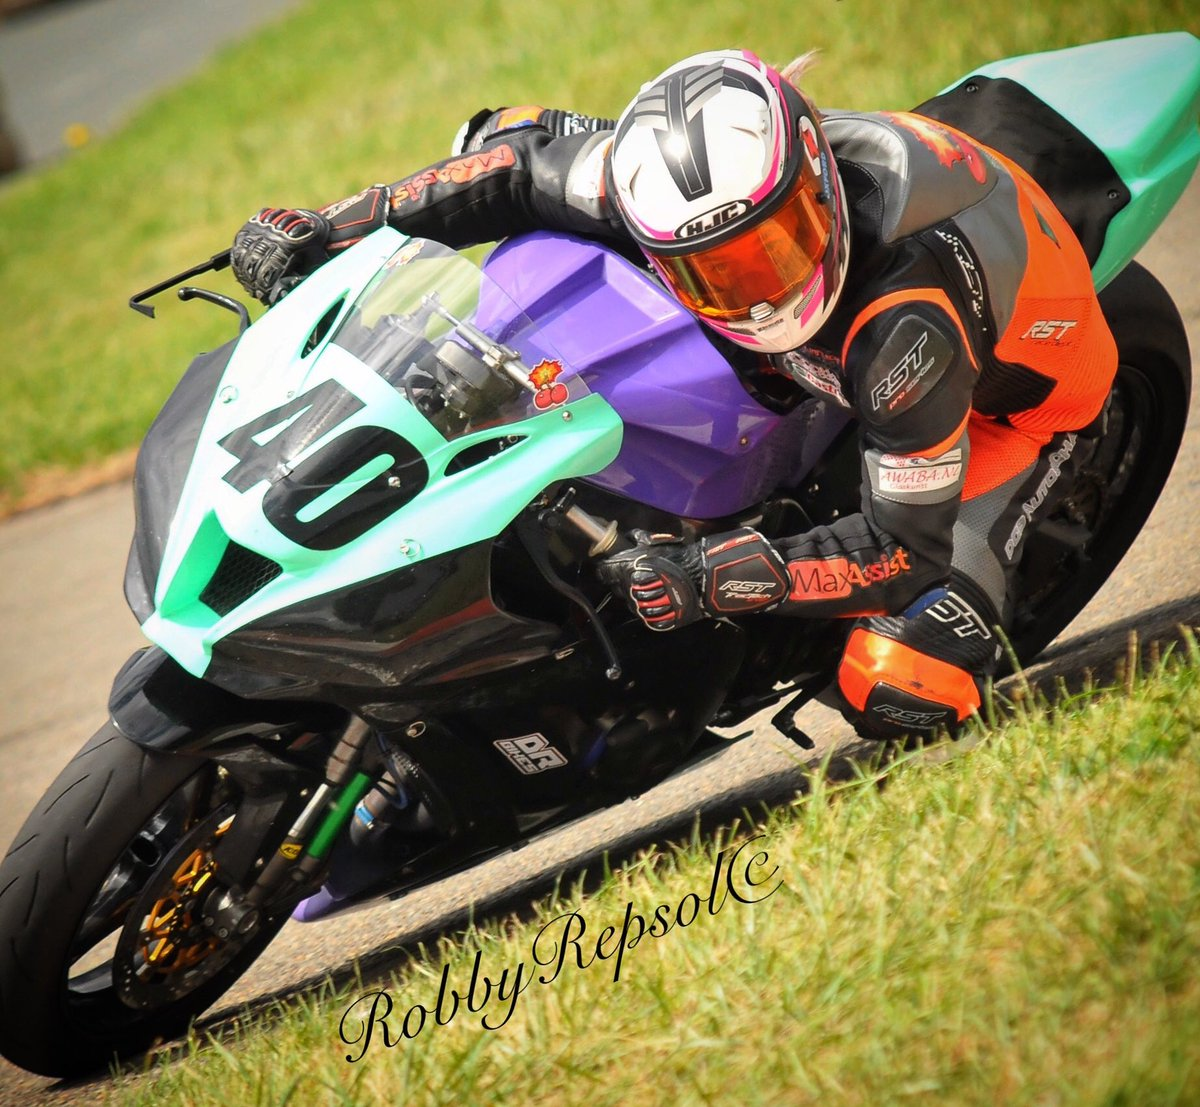 Up Coming IRRC Force Schoots Eyeing Up TT Debut In 2019